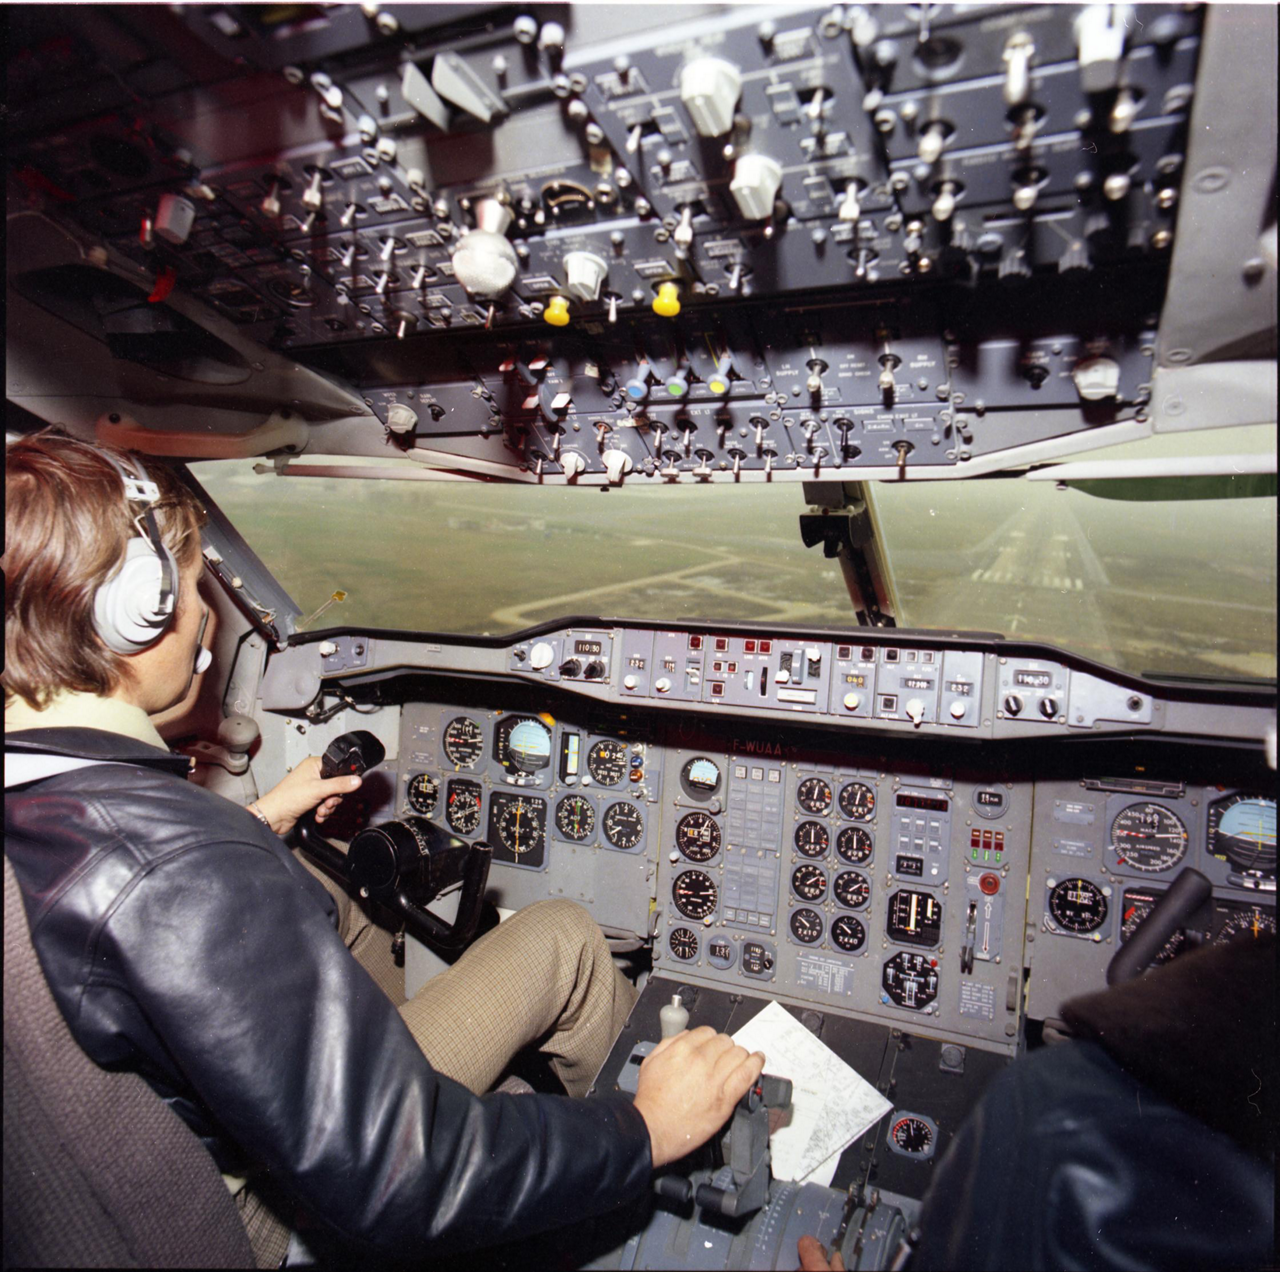 A view of Airbus' innovative Forward-Facing Crew Cockpit configuration inside an A300 aircraft.